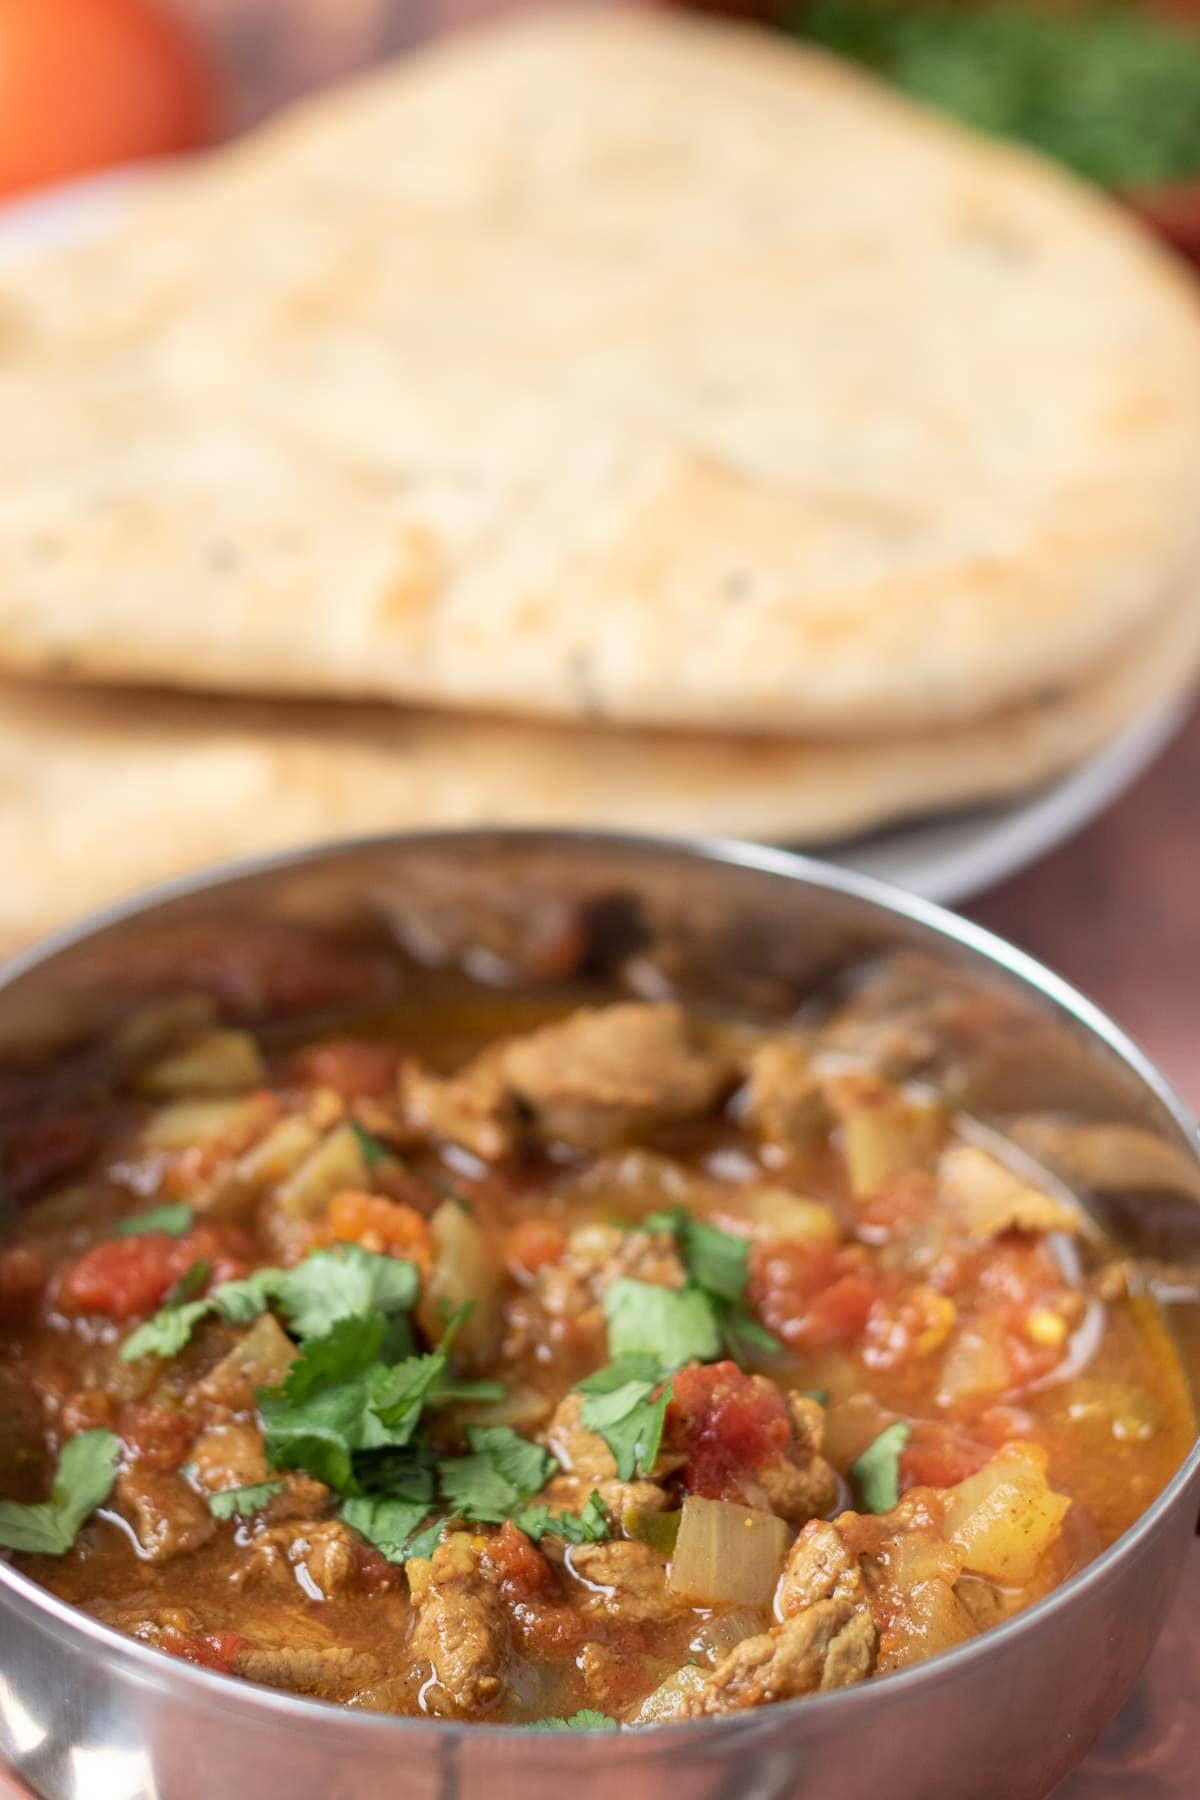 Close up of a balti dish of slow cooker lamb curry with naan breads in the background.